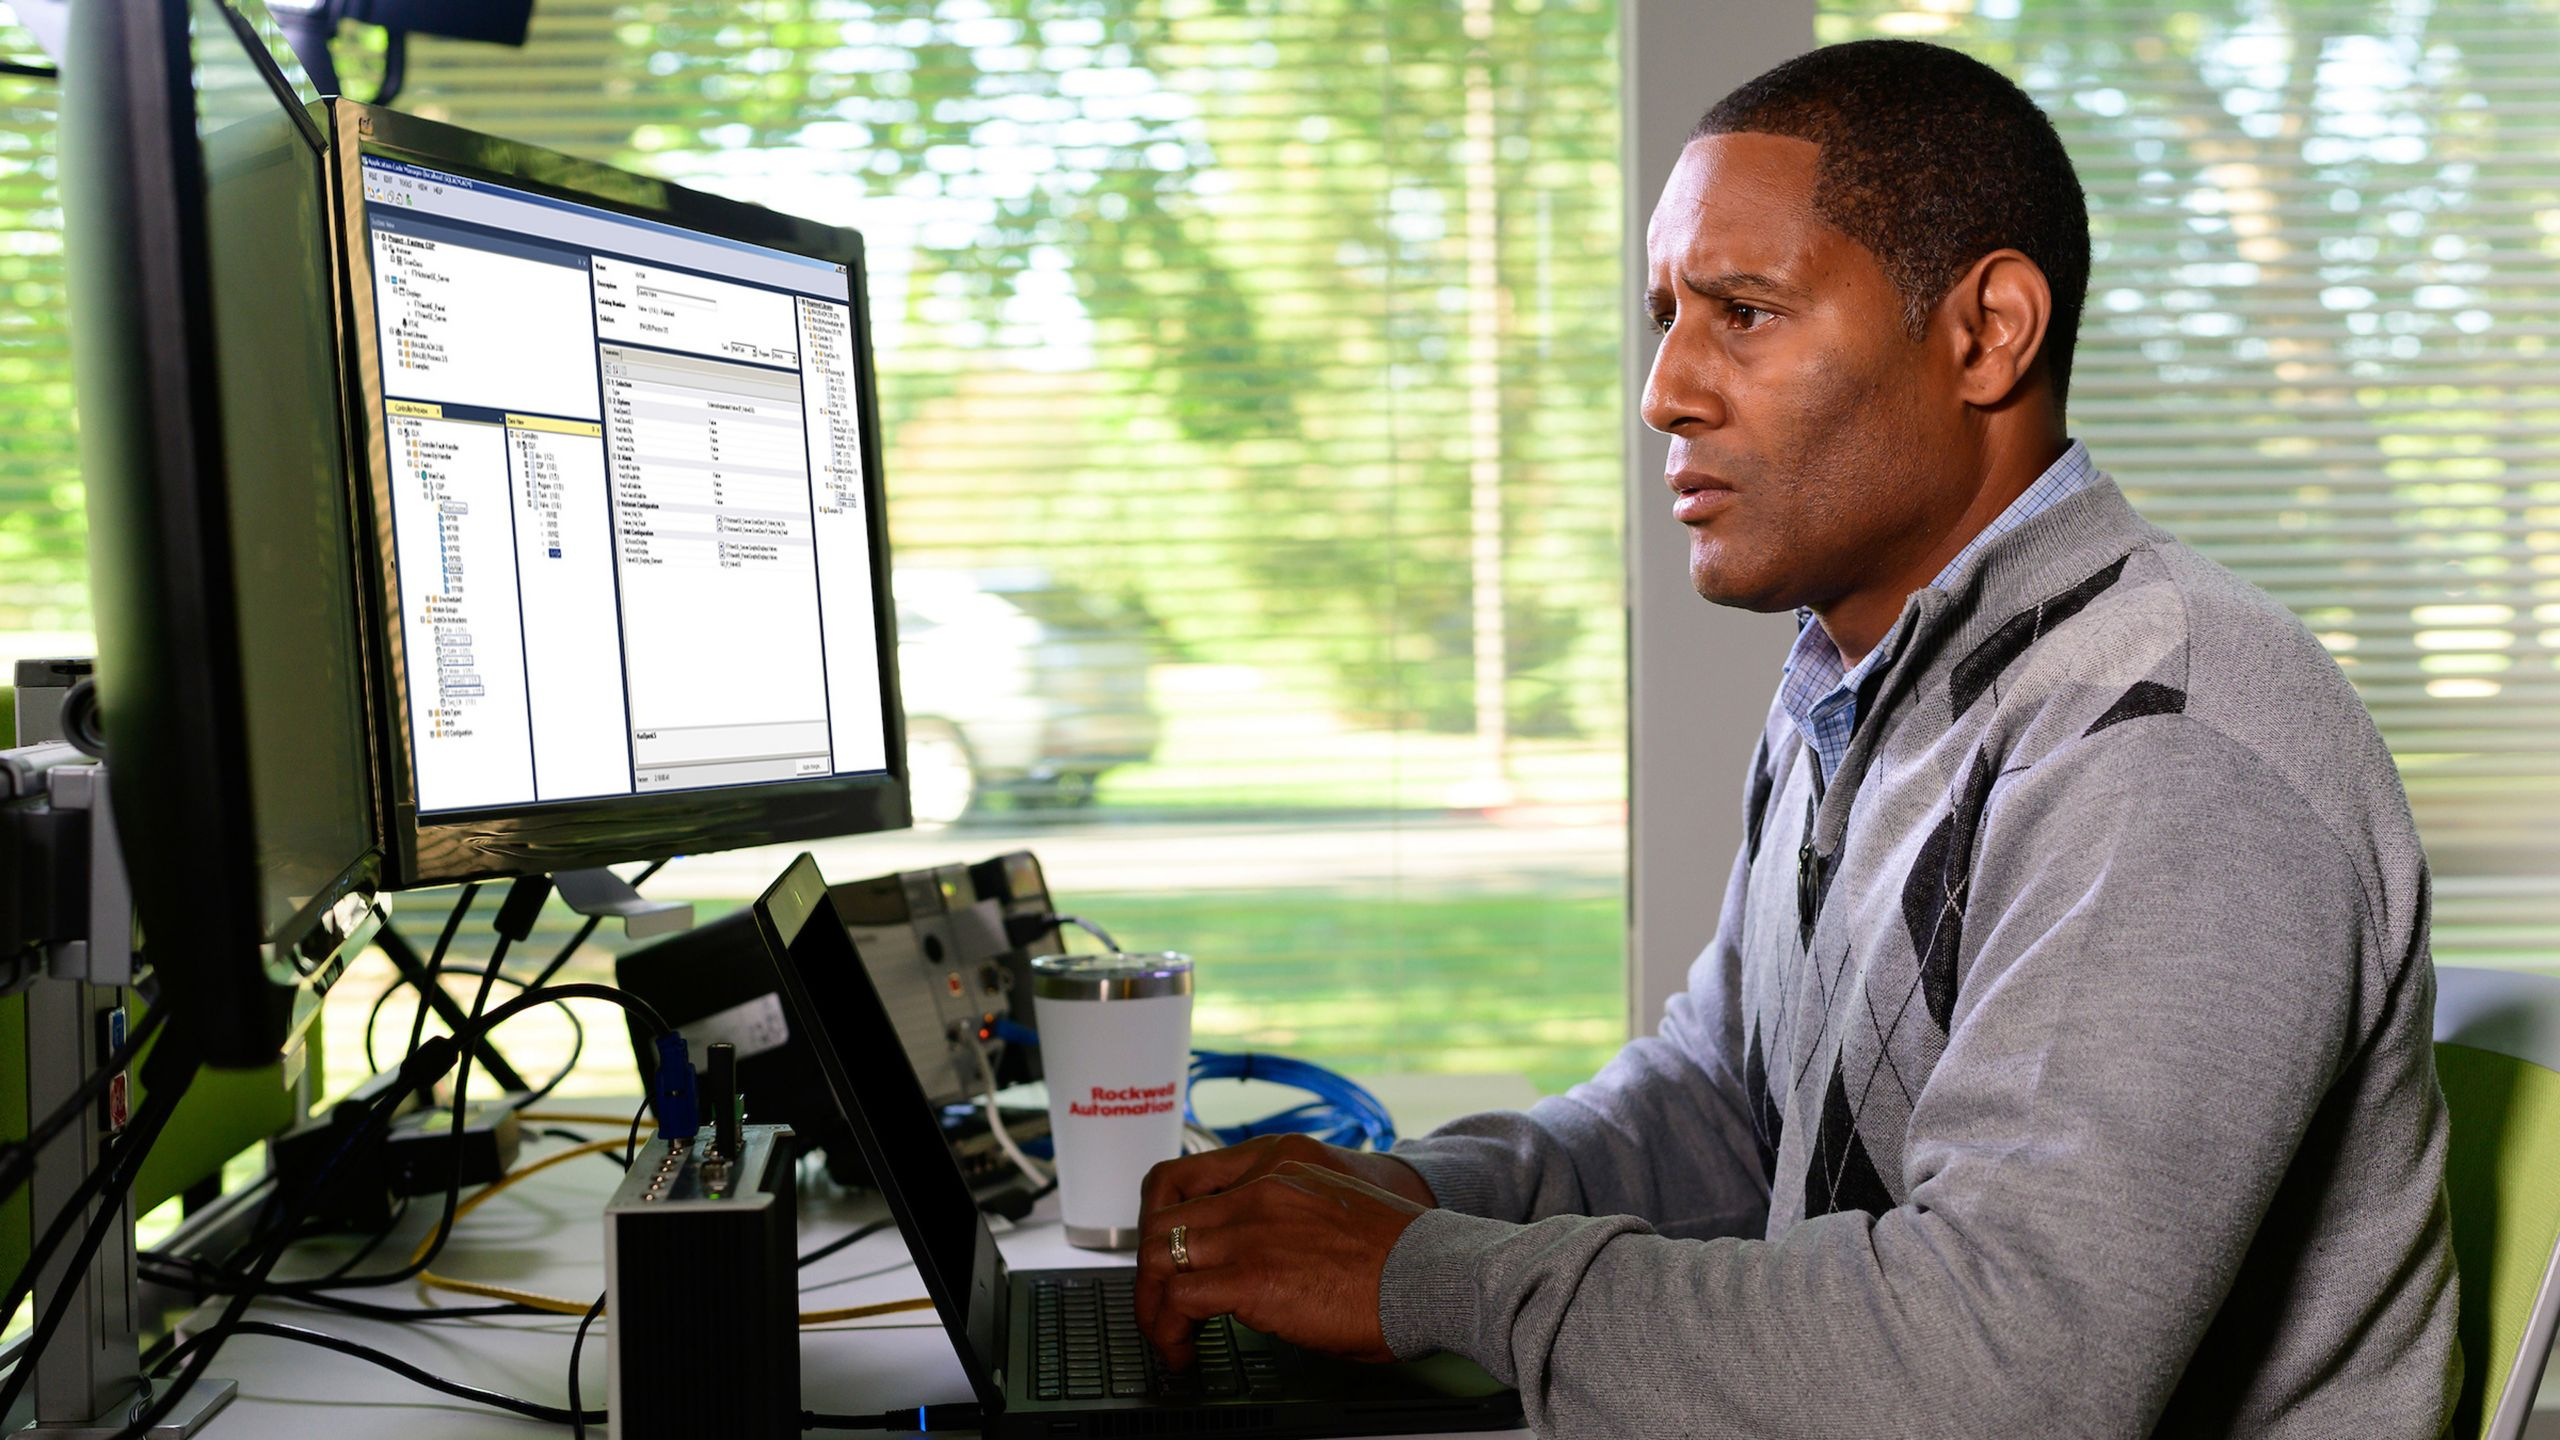 Rockwell Automation employee viewing his monitor and adding information into the Studio 5000 Application Code Manager software